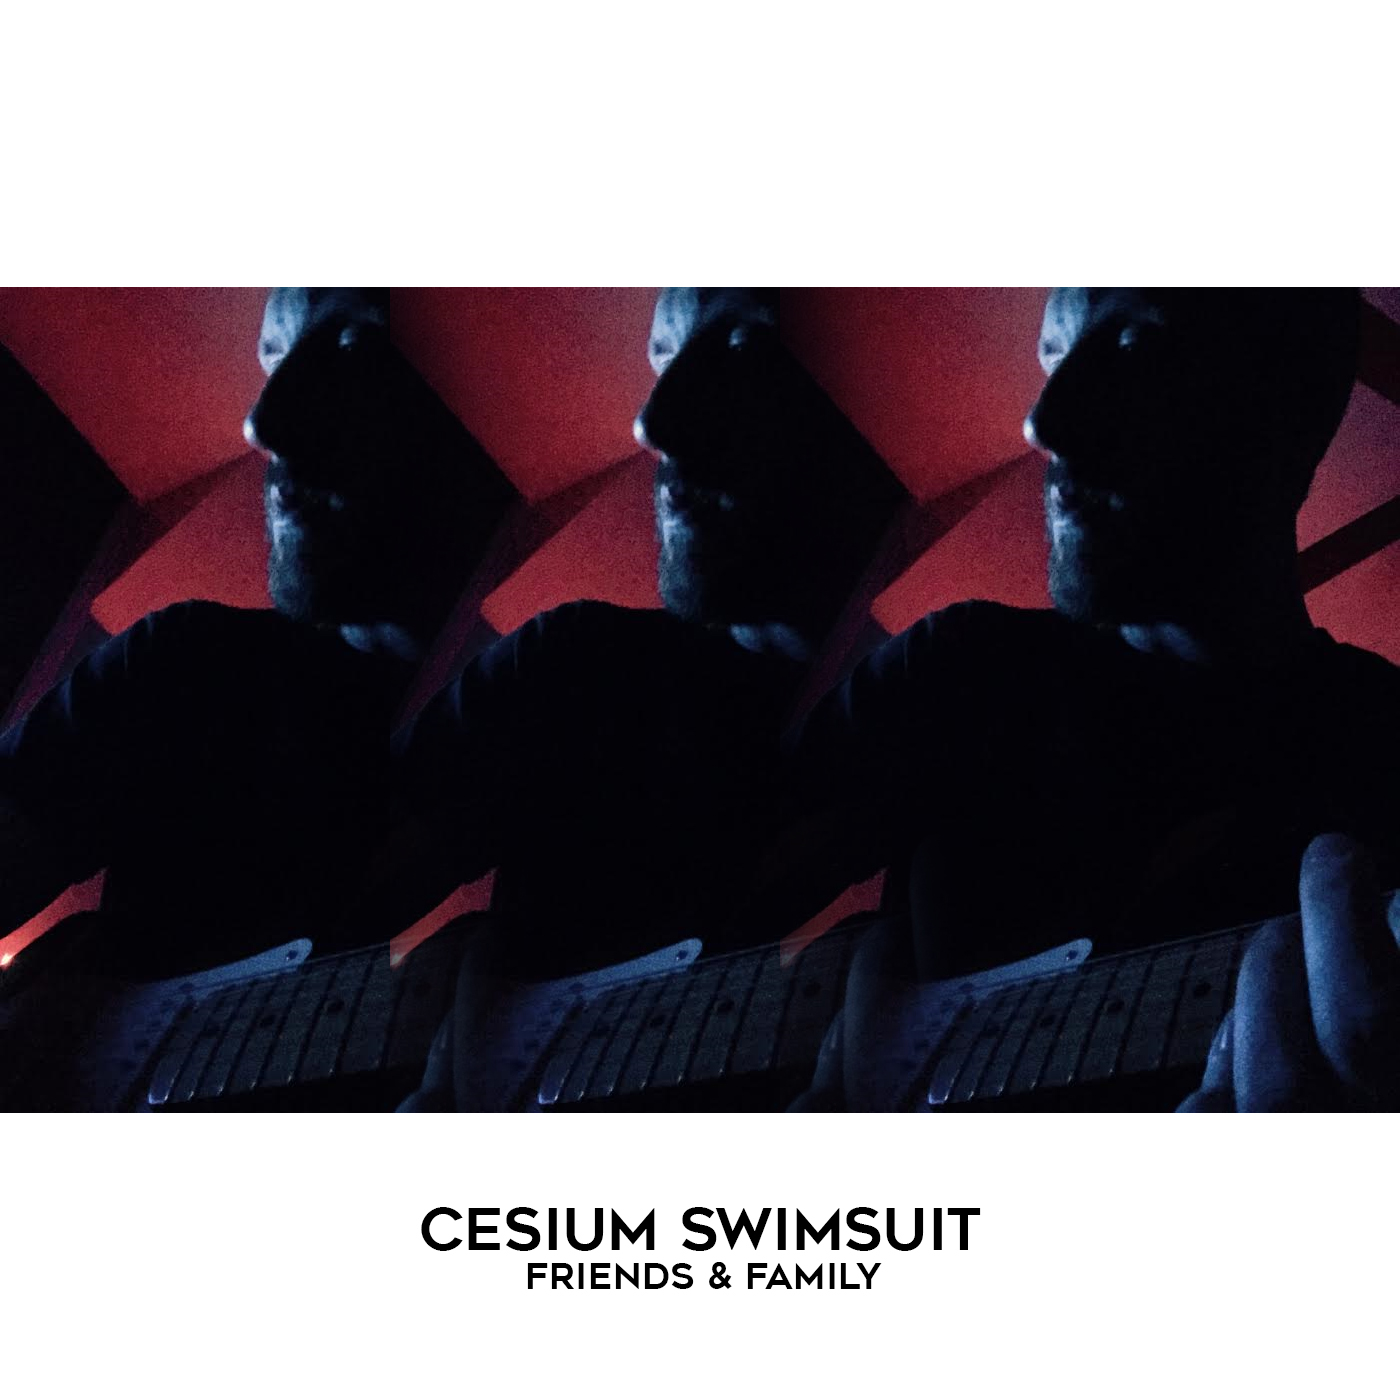 Friends & Family: Cesium Swimsuit